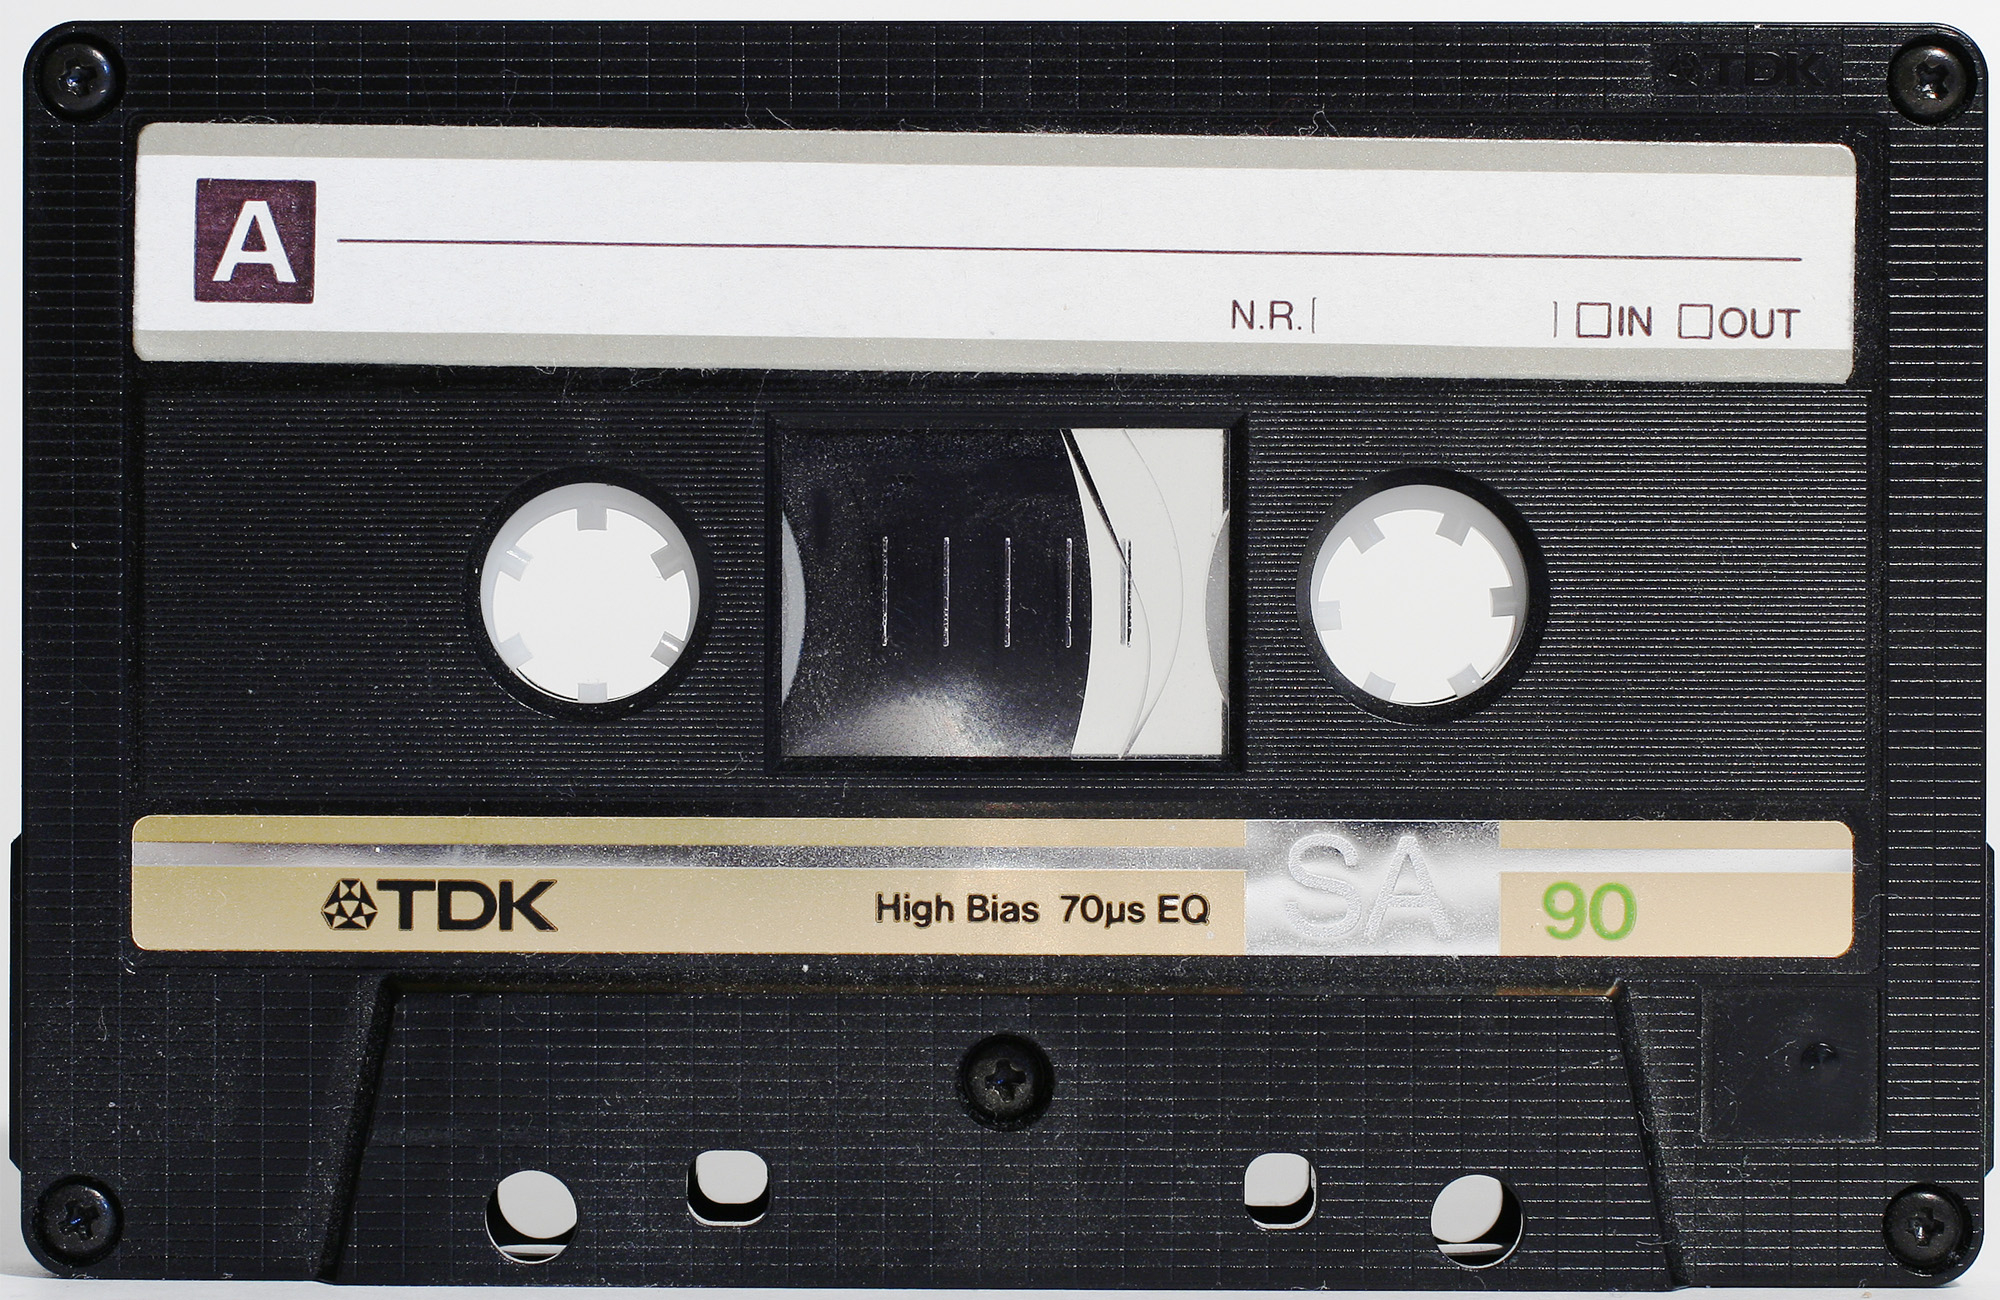 http://upload.wikimedia.org/wikipedia/commons/f/f0/Compactcassette.jpg